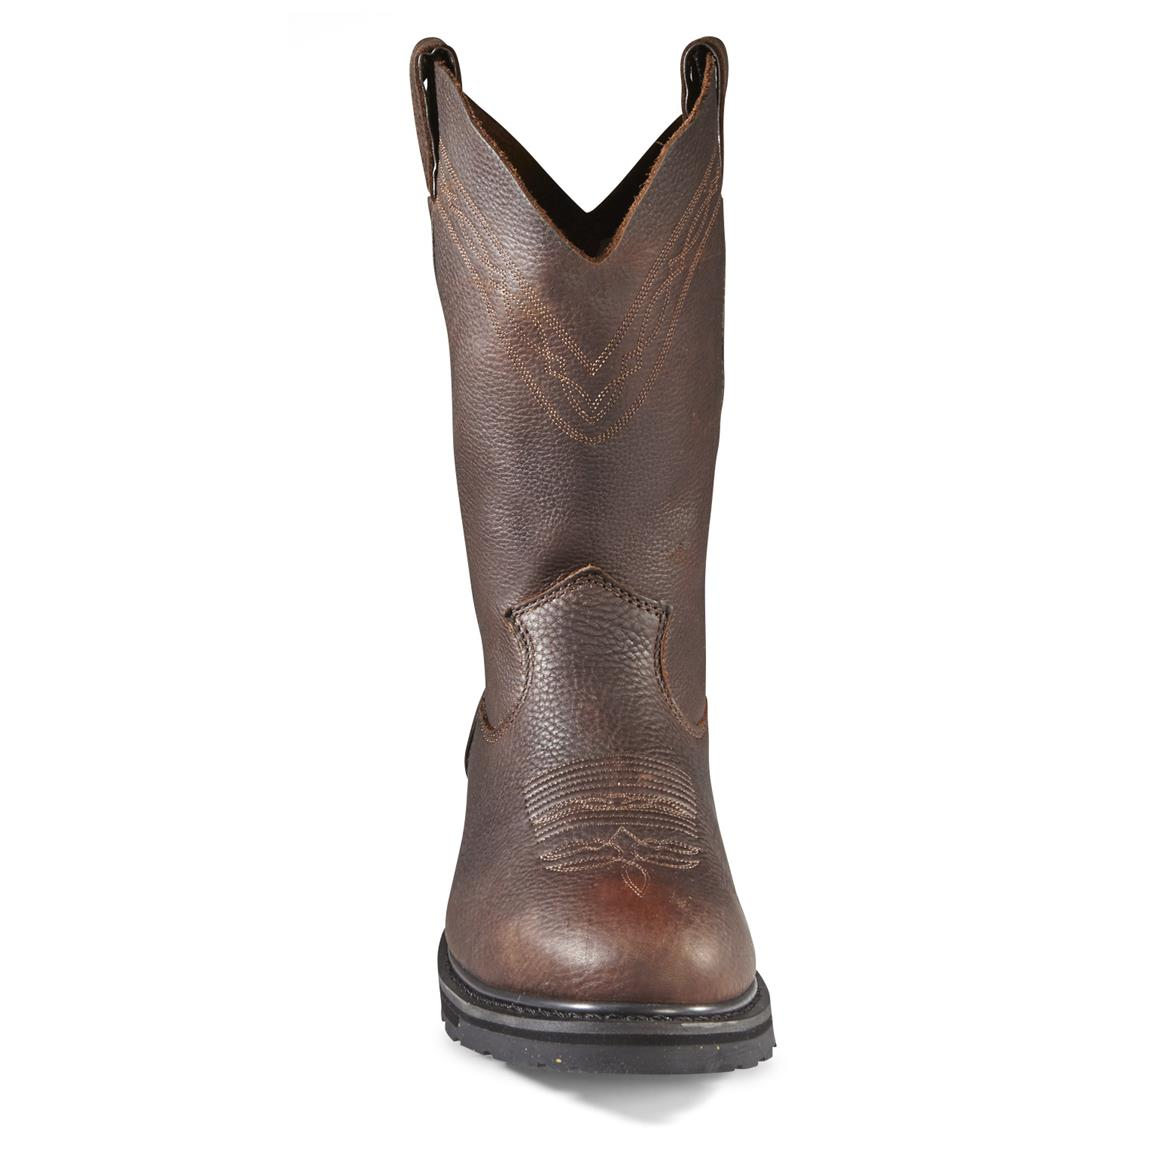 Oil-tanned, tumbled full grain leather uppers are rugged for all-day, every day working conditions... yet polish up nice for a dress boot in a pinch!